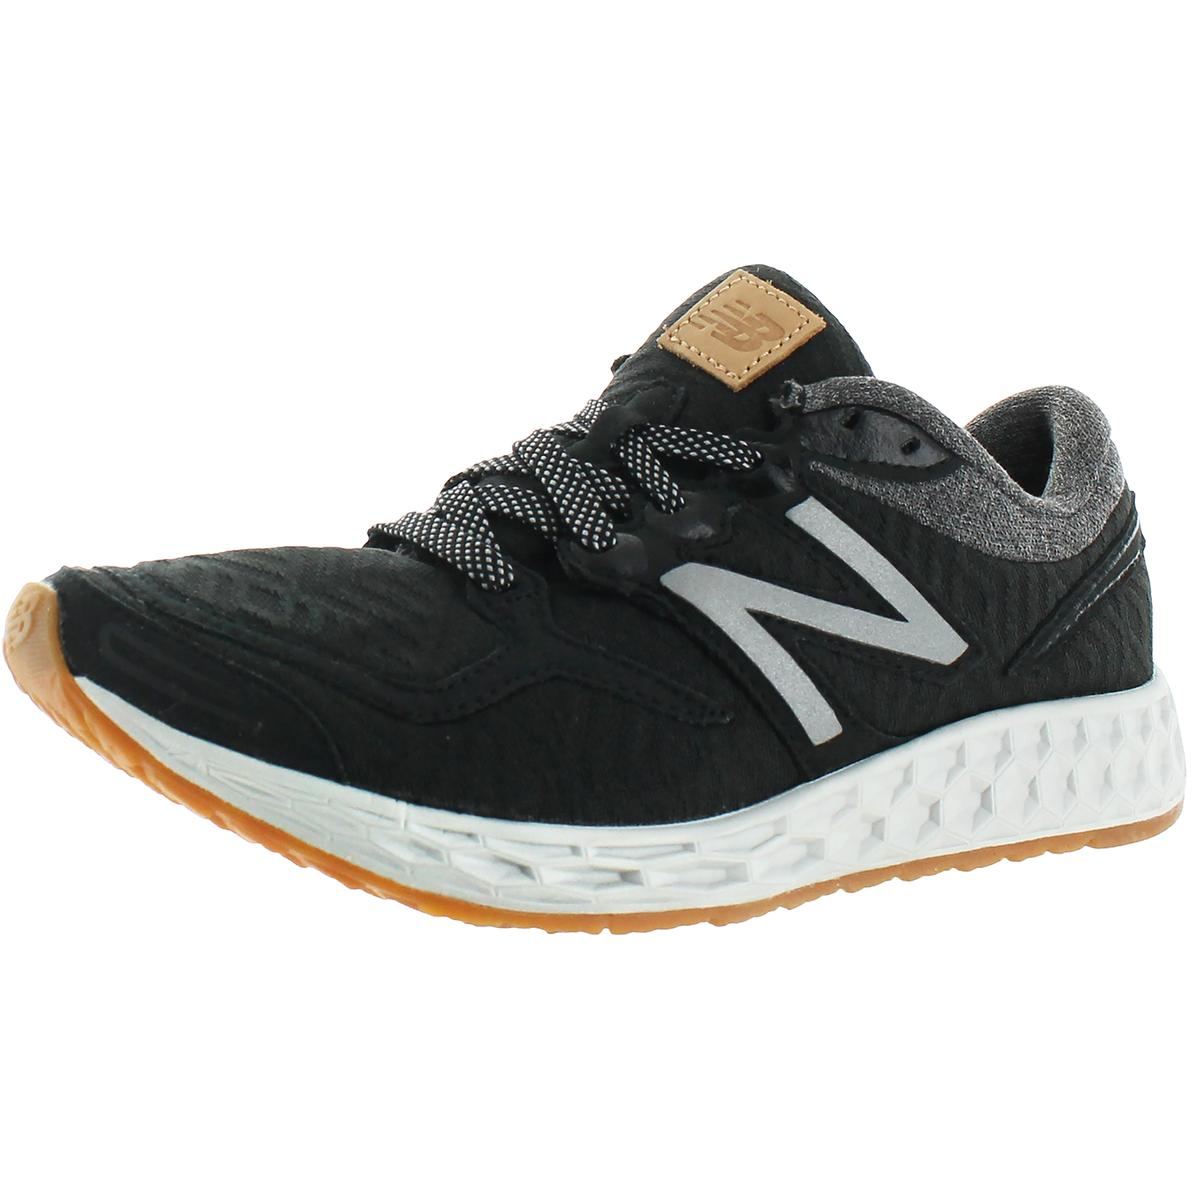 Details about New Balance Womens Navy Training Running Shoes Sneakers 5  Medium (B 8f443414854fa